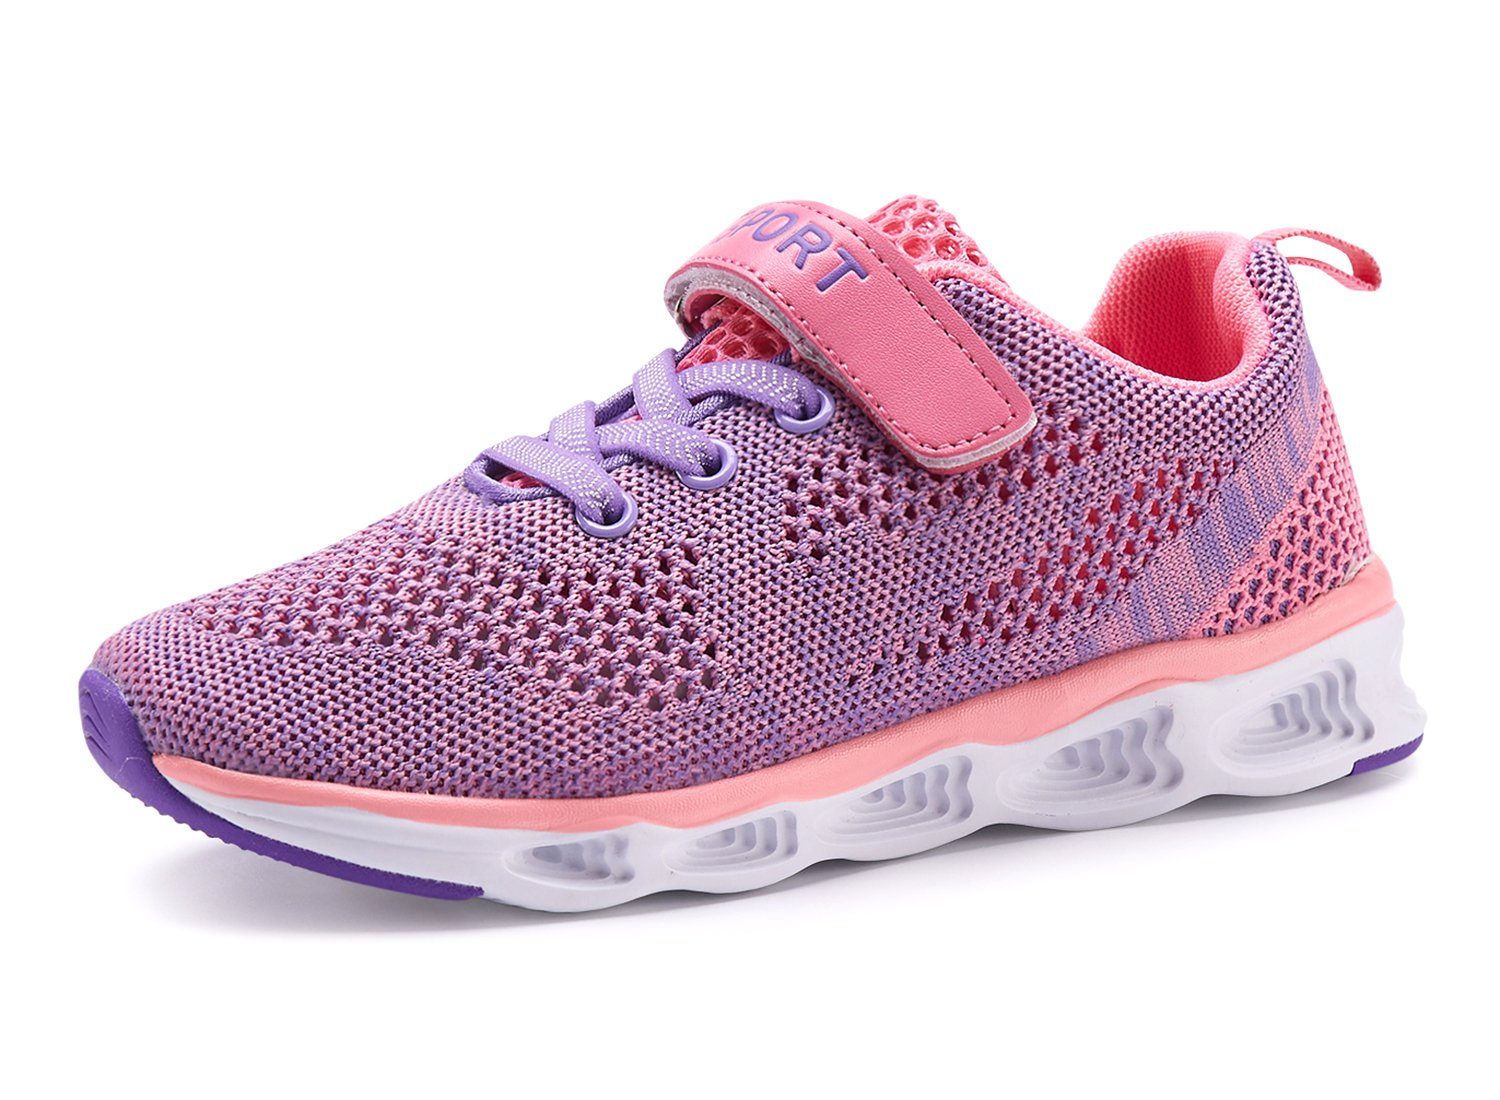 Casbeam Lightweight Comfortable Boys and Grils Running Shoes Purple 32